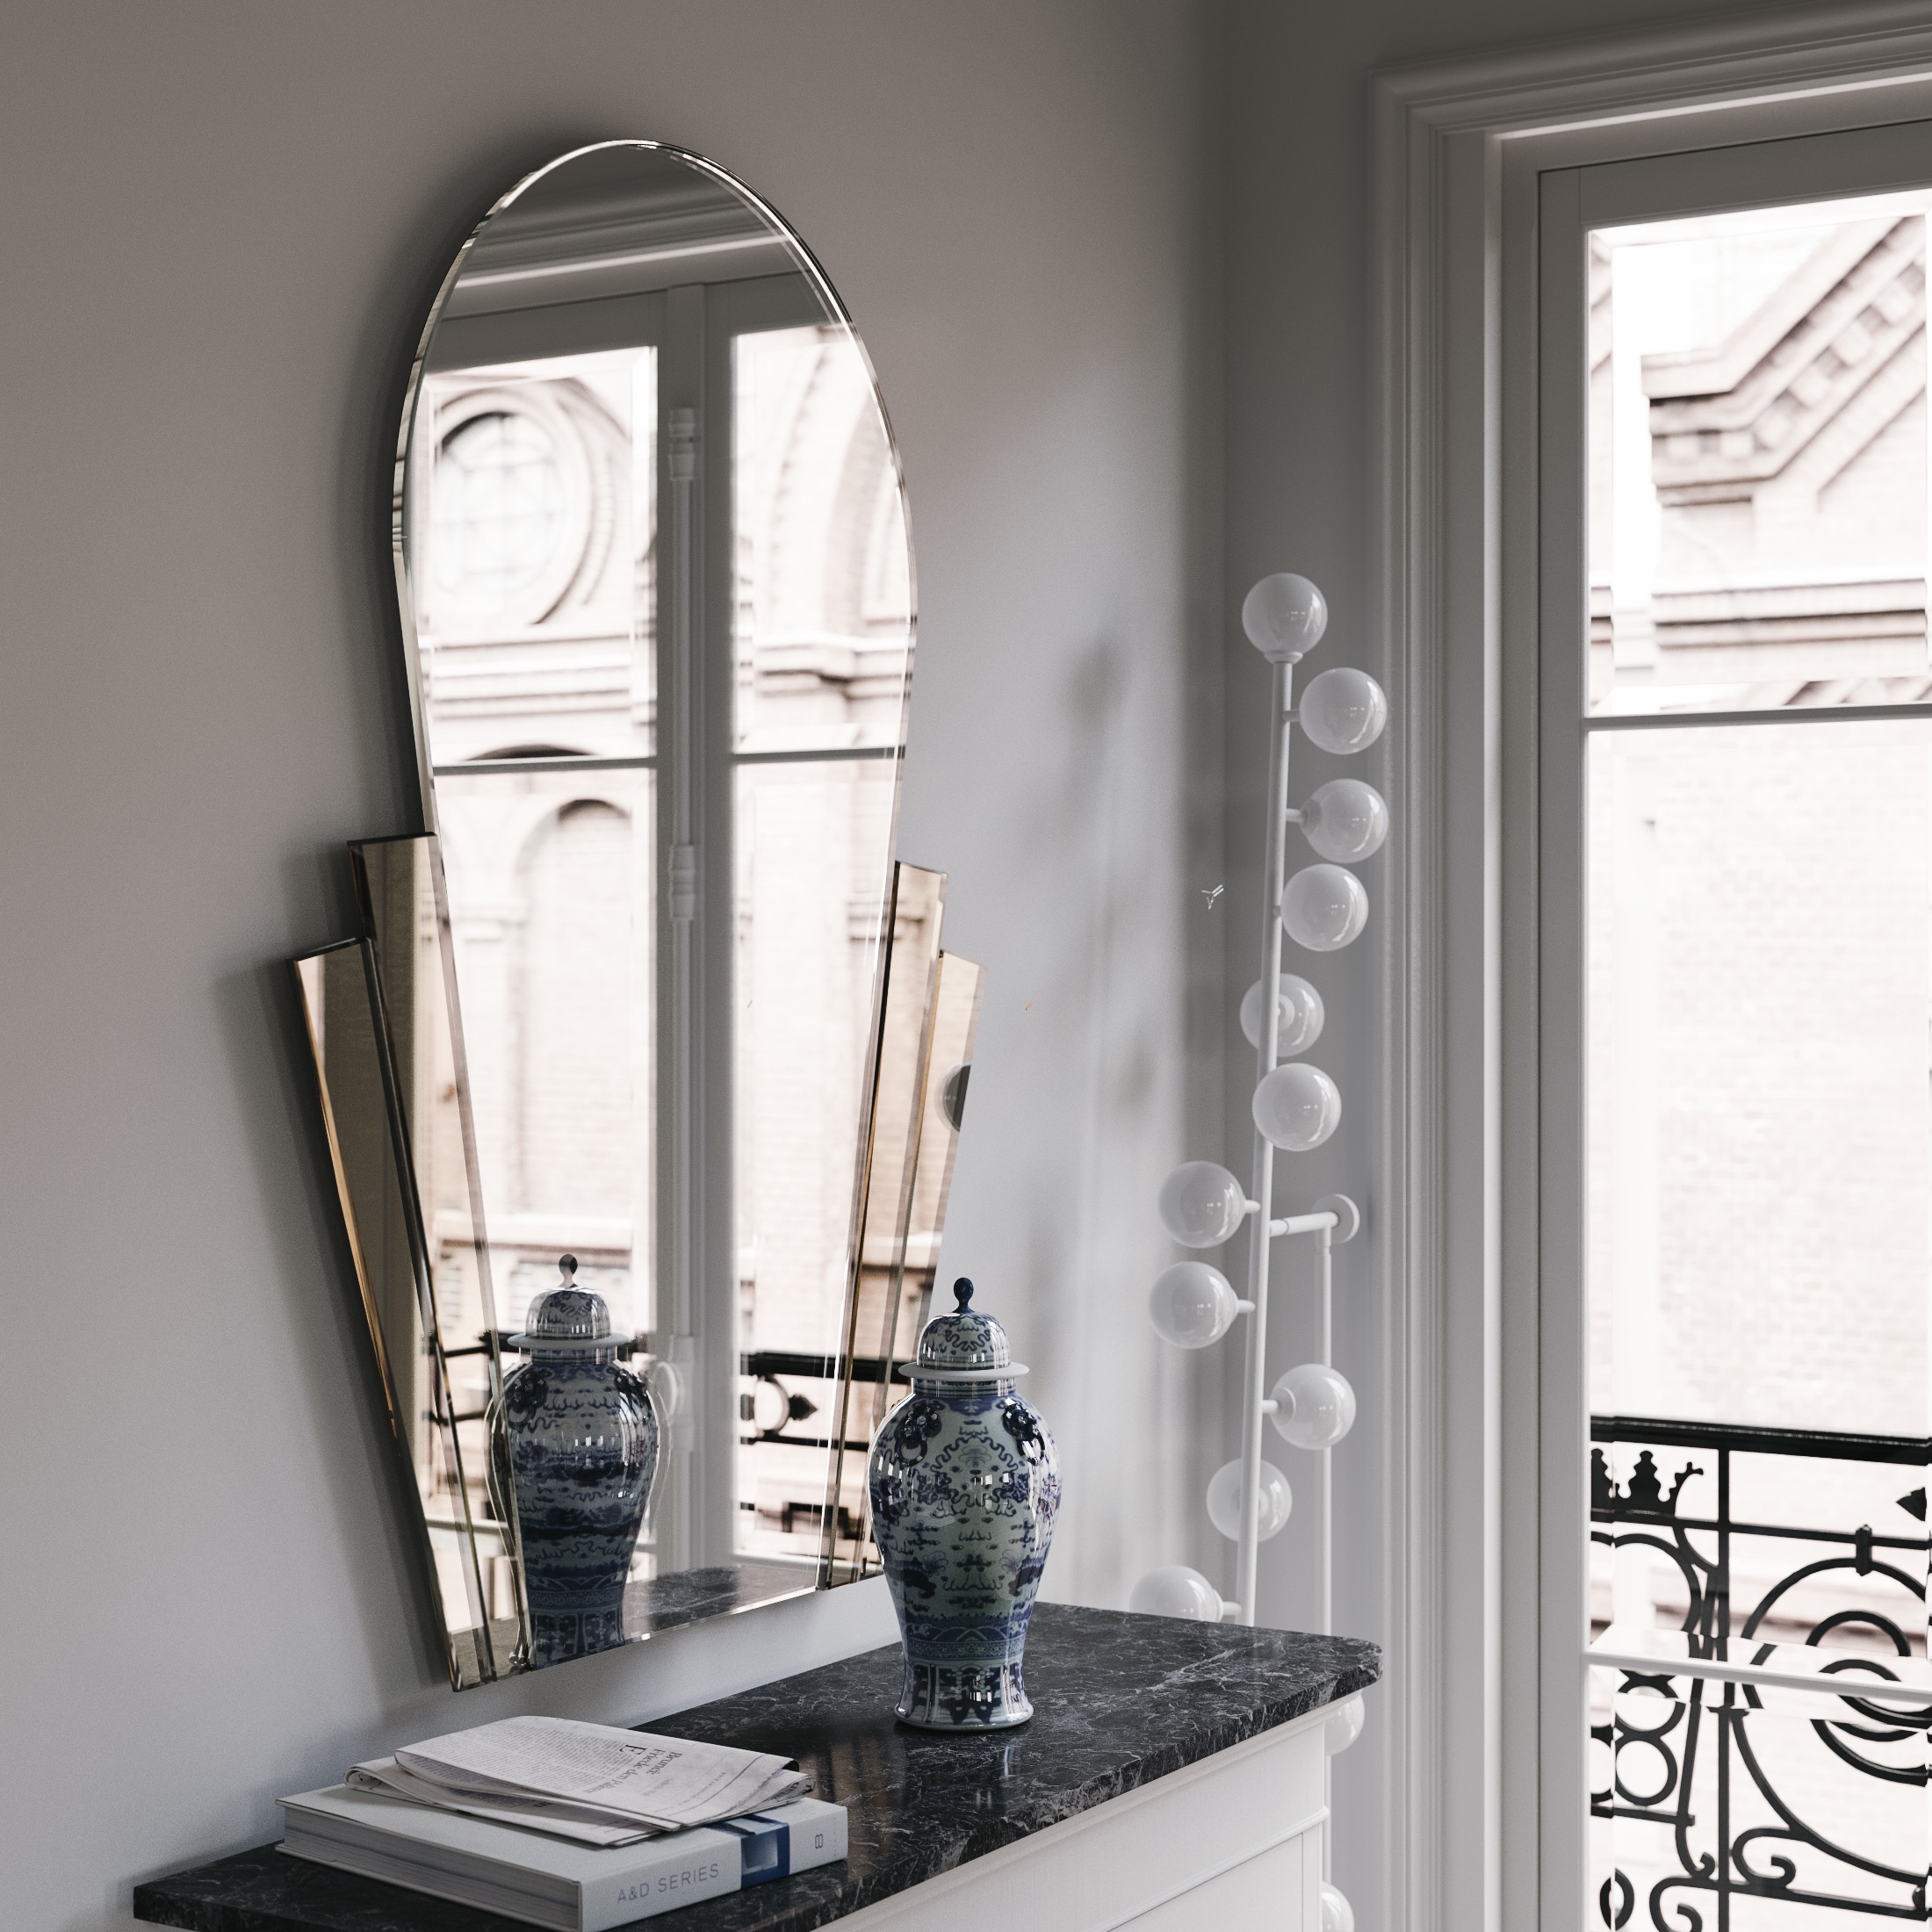 Side view of the same mirror